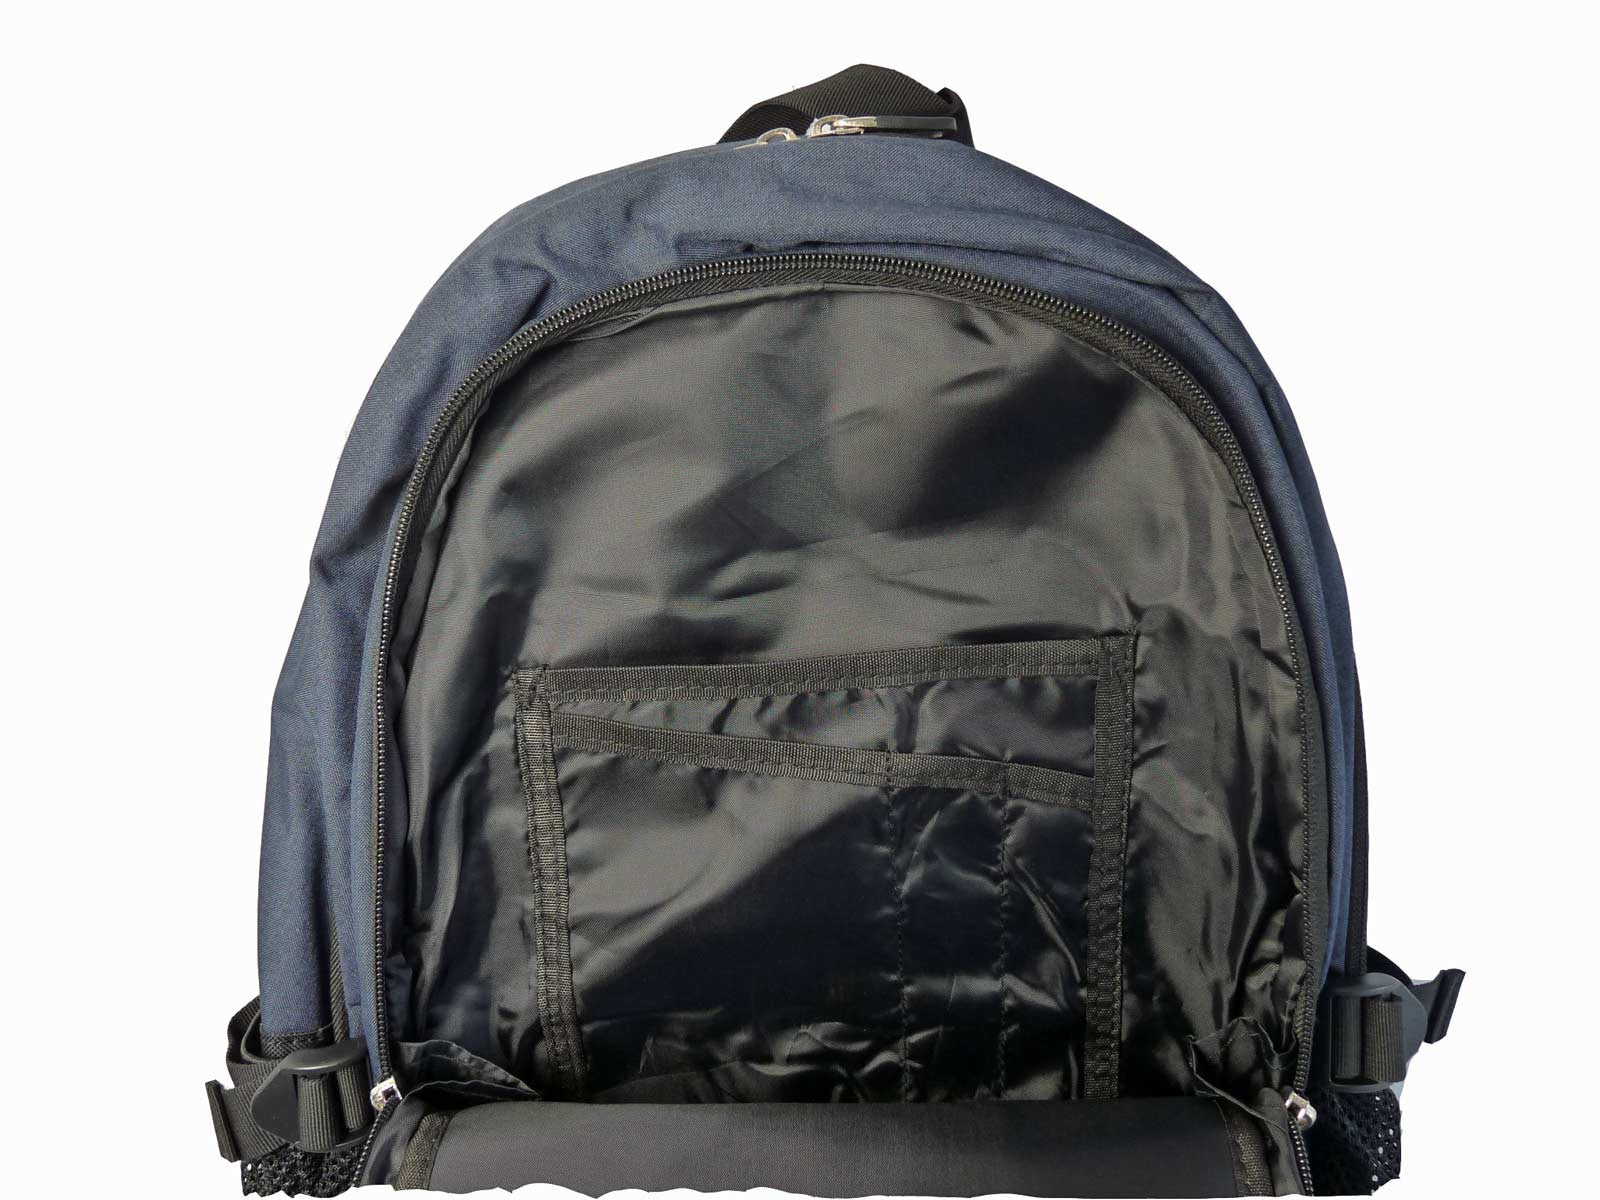 Laptop Macbook Backpack Rucksack Bag RL45N Inside View